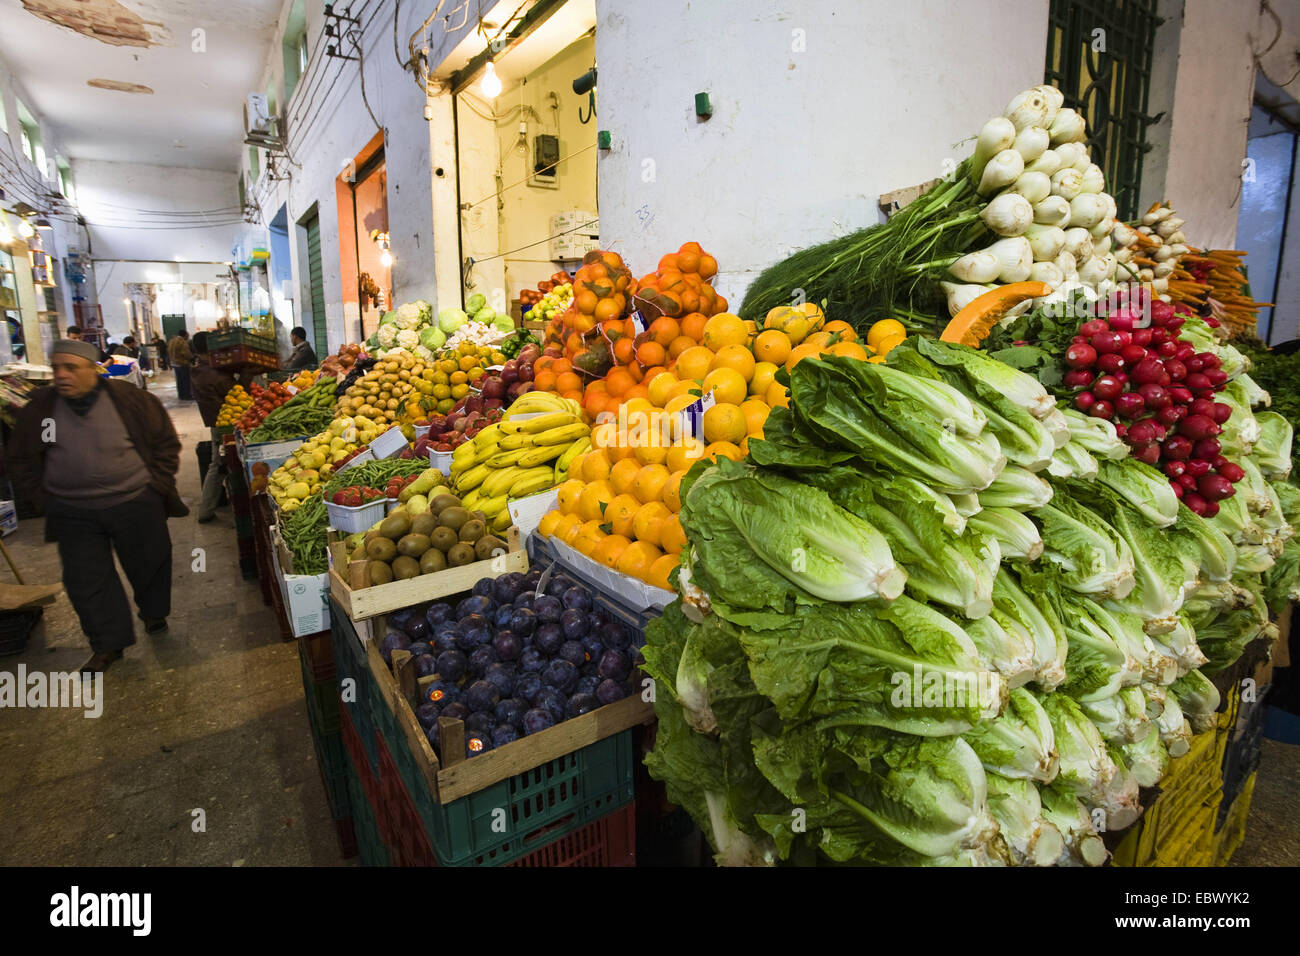 fruit and vegetable markets stock photos u0026 fruit and vegetable